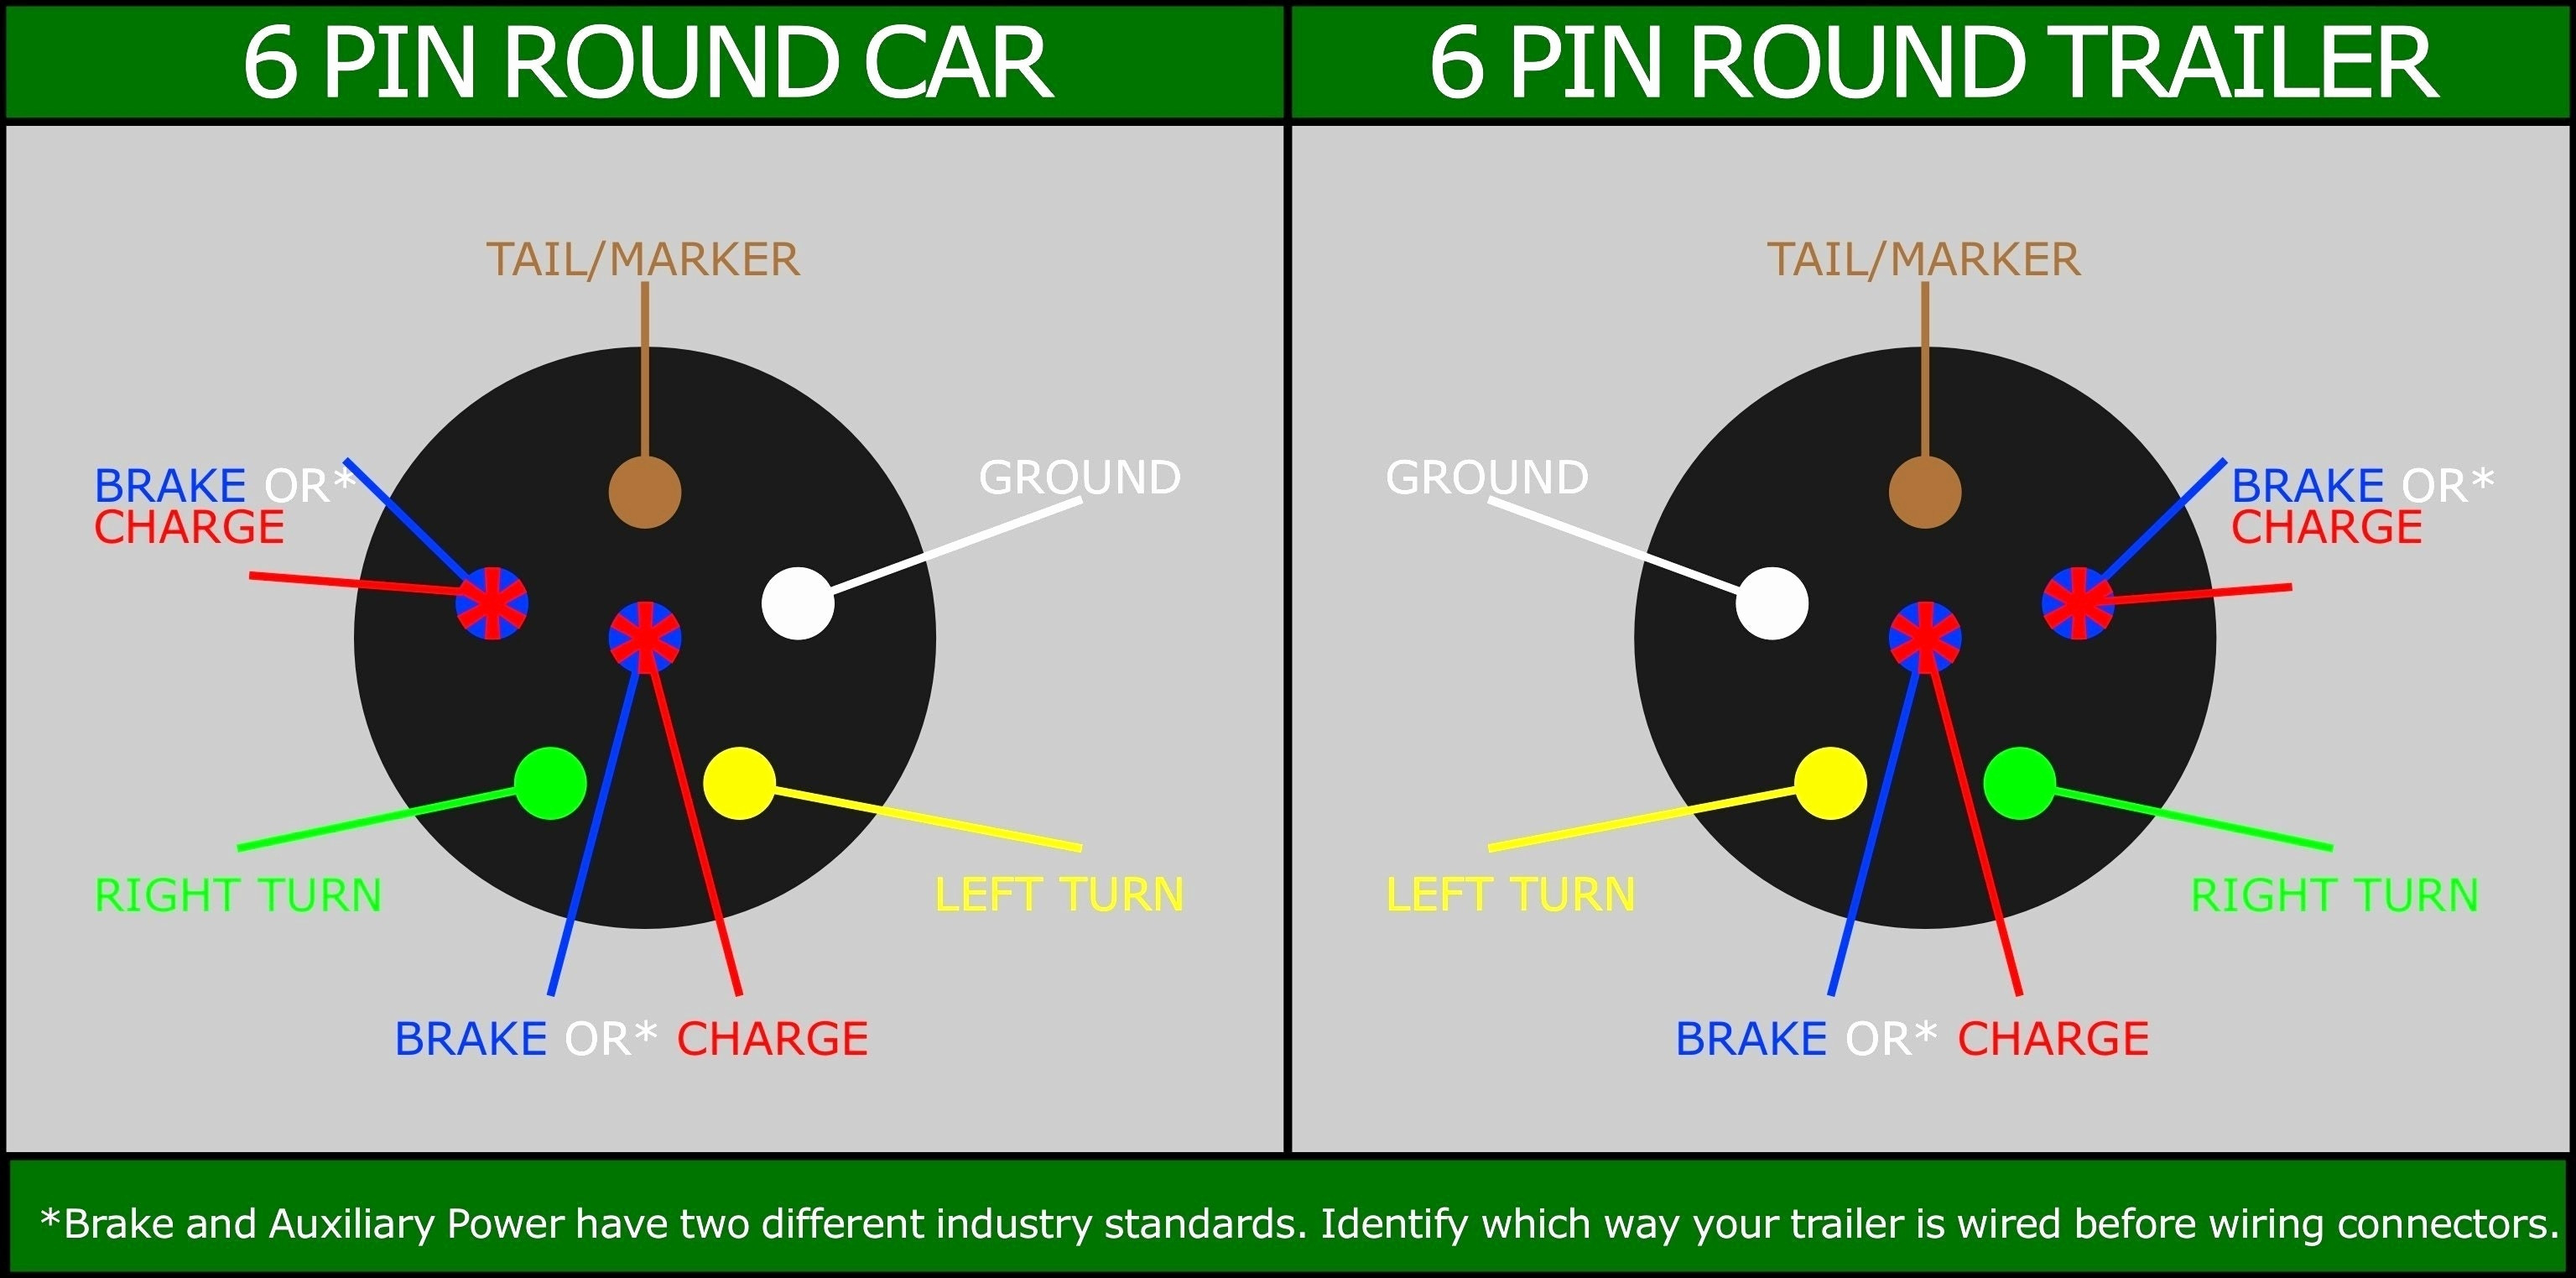 Volvo 7 Pin Round Trailer Plug Wiring Diagram | Wiring Diagram - 7 Pin Round Trailer Wiring Diagram